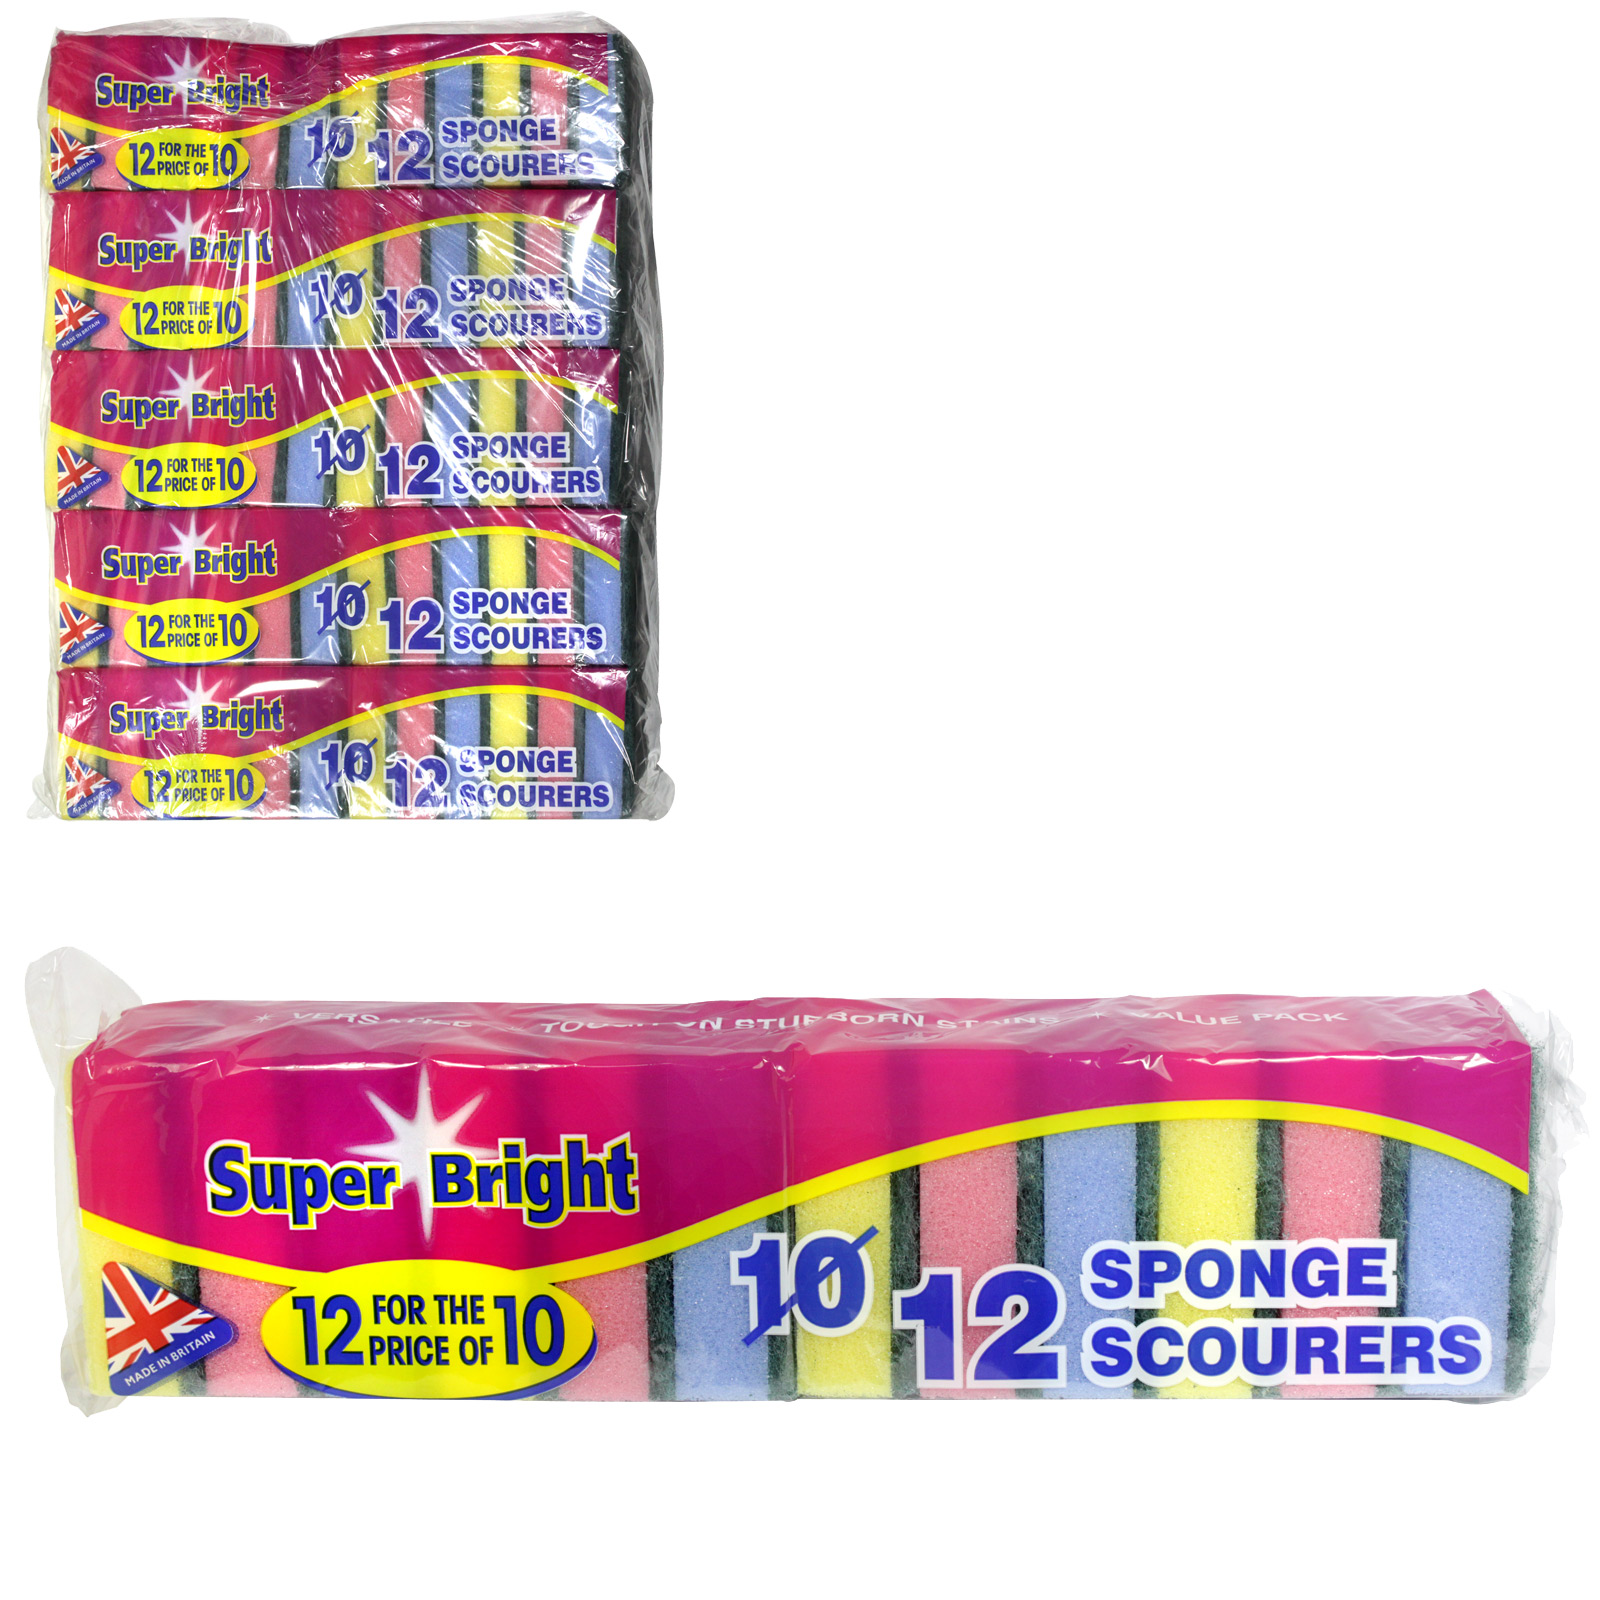 SUPERBRIGHT 12/10 SPONGE SCOURERS 12 FOR THE PRICE OF 10   X10